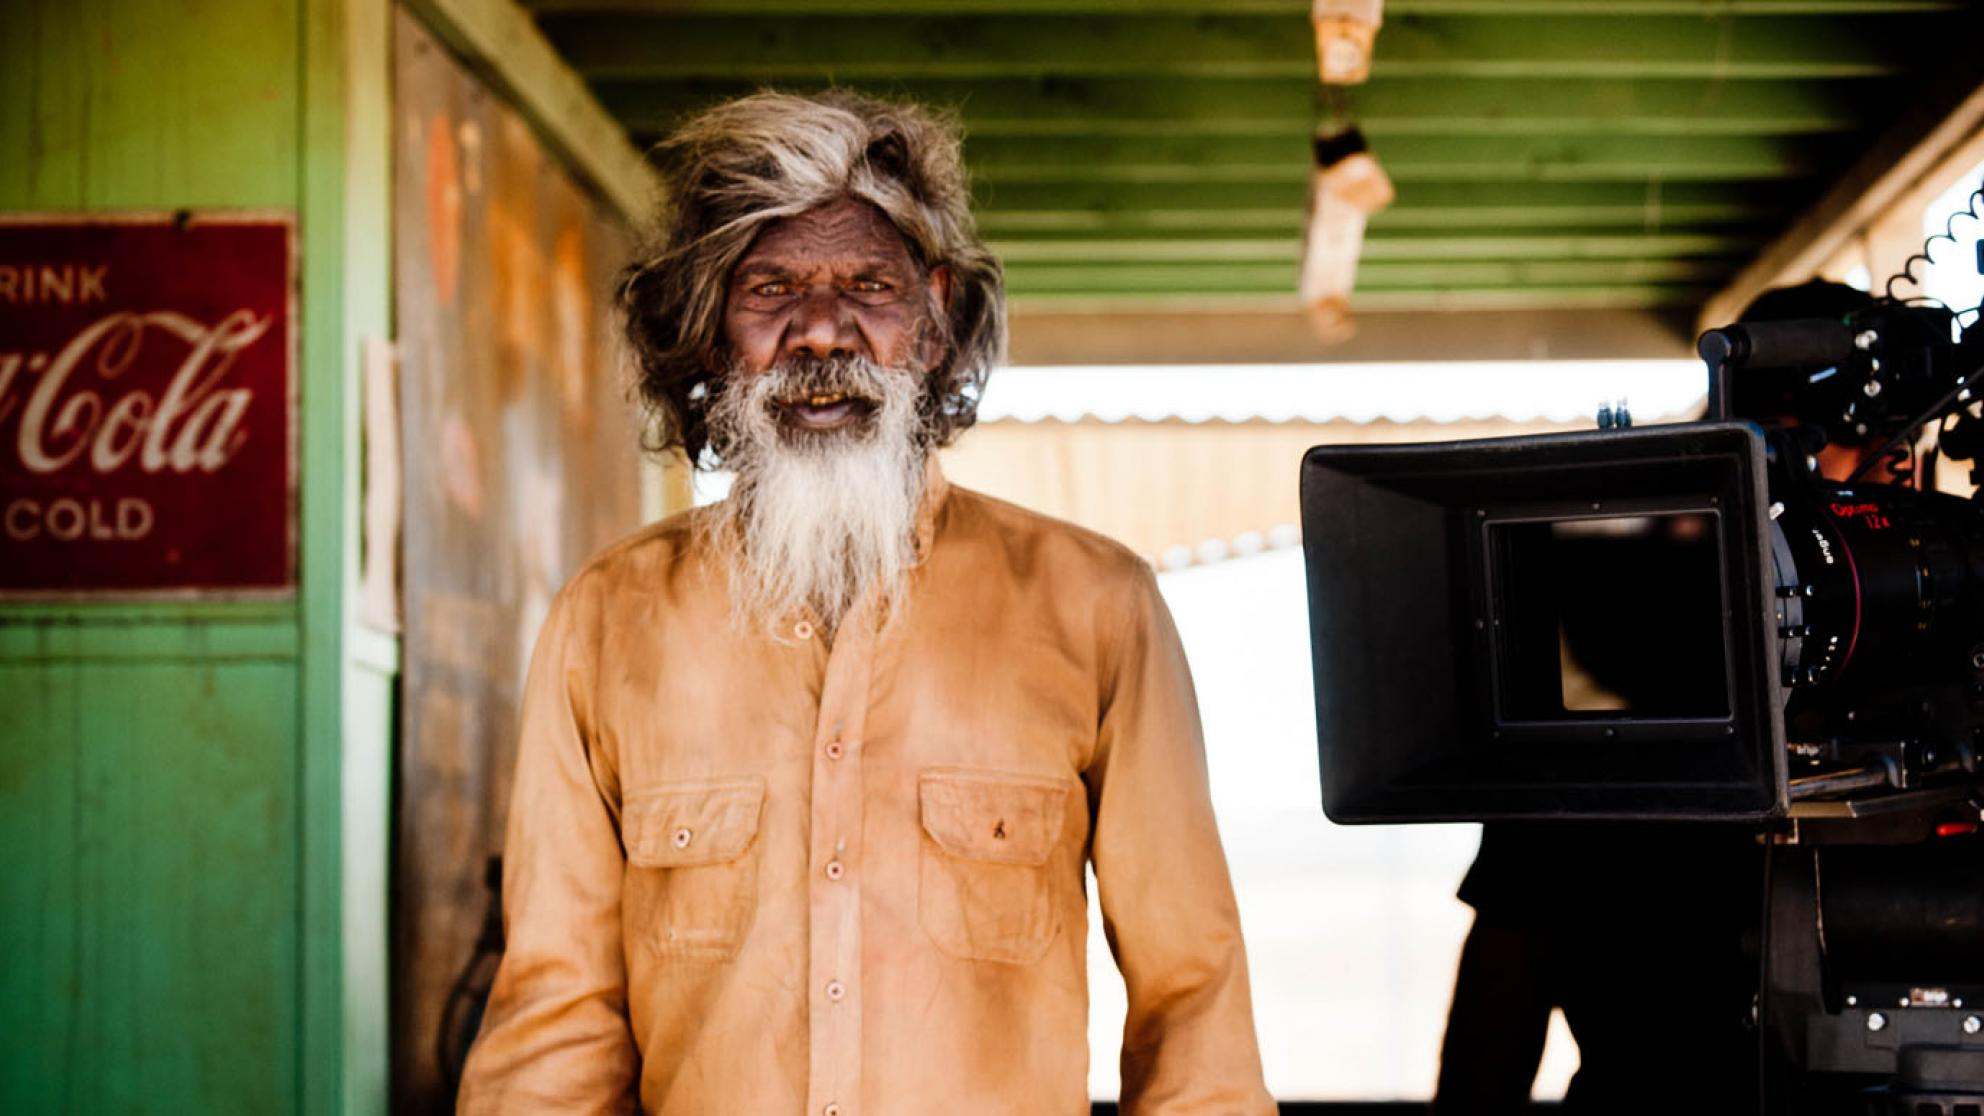 David Gulpilil on the set of Satellite Boy with a film camera beside him. He is looking directly at the camera.